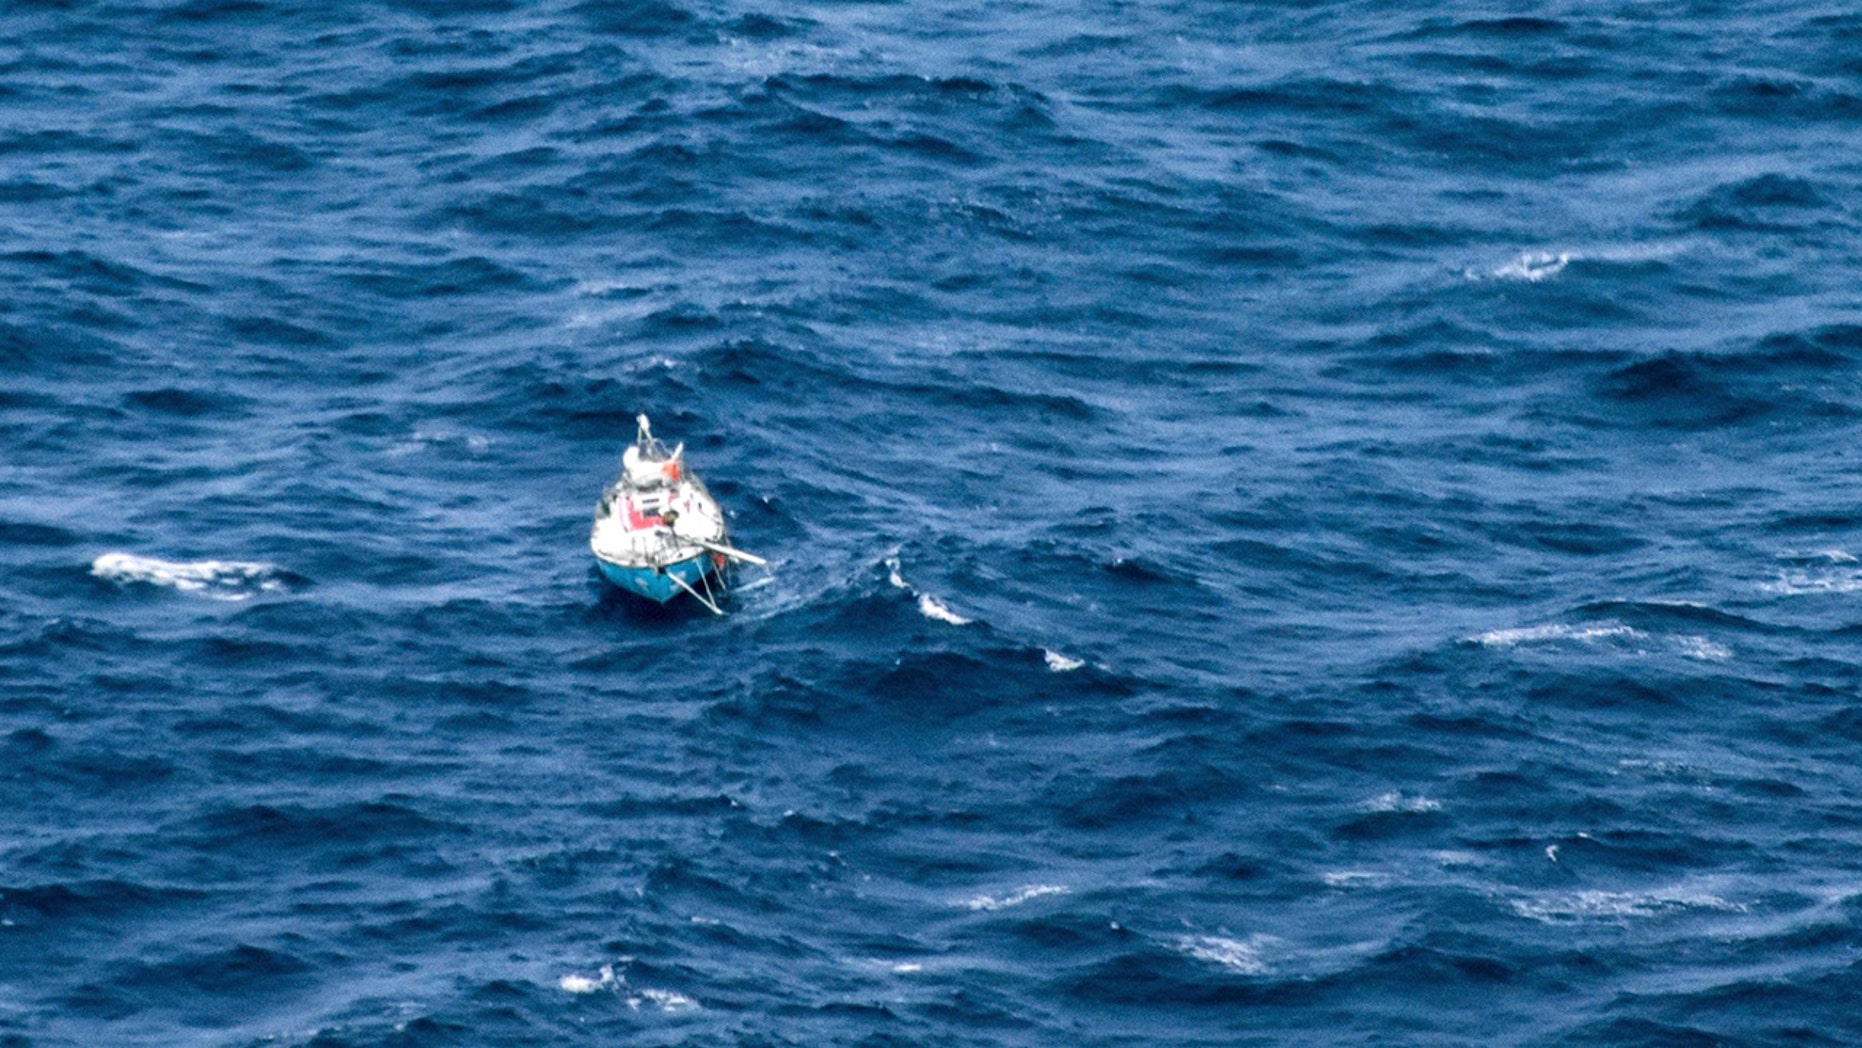 In this photo provided by the Australian Maritime Safety Authority on Monday, Sept. 24, 2018, the distressed yacht, Thuriya, with Indian sailor Abhilash Tomy on board, floats in the southern Indian Ocean. Tomy was injured and his yacht lost its mast in a storm on Friday.